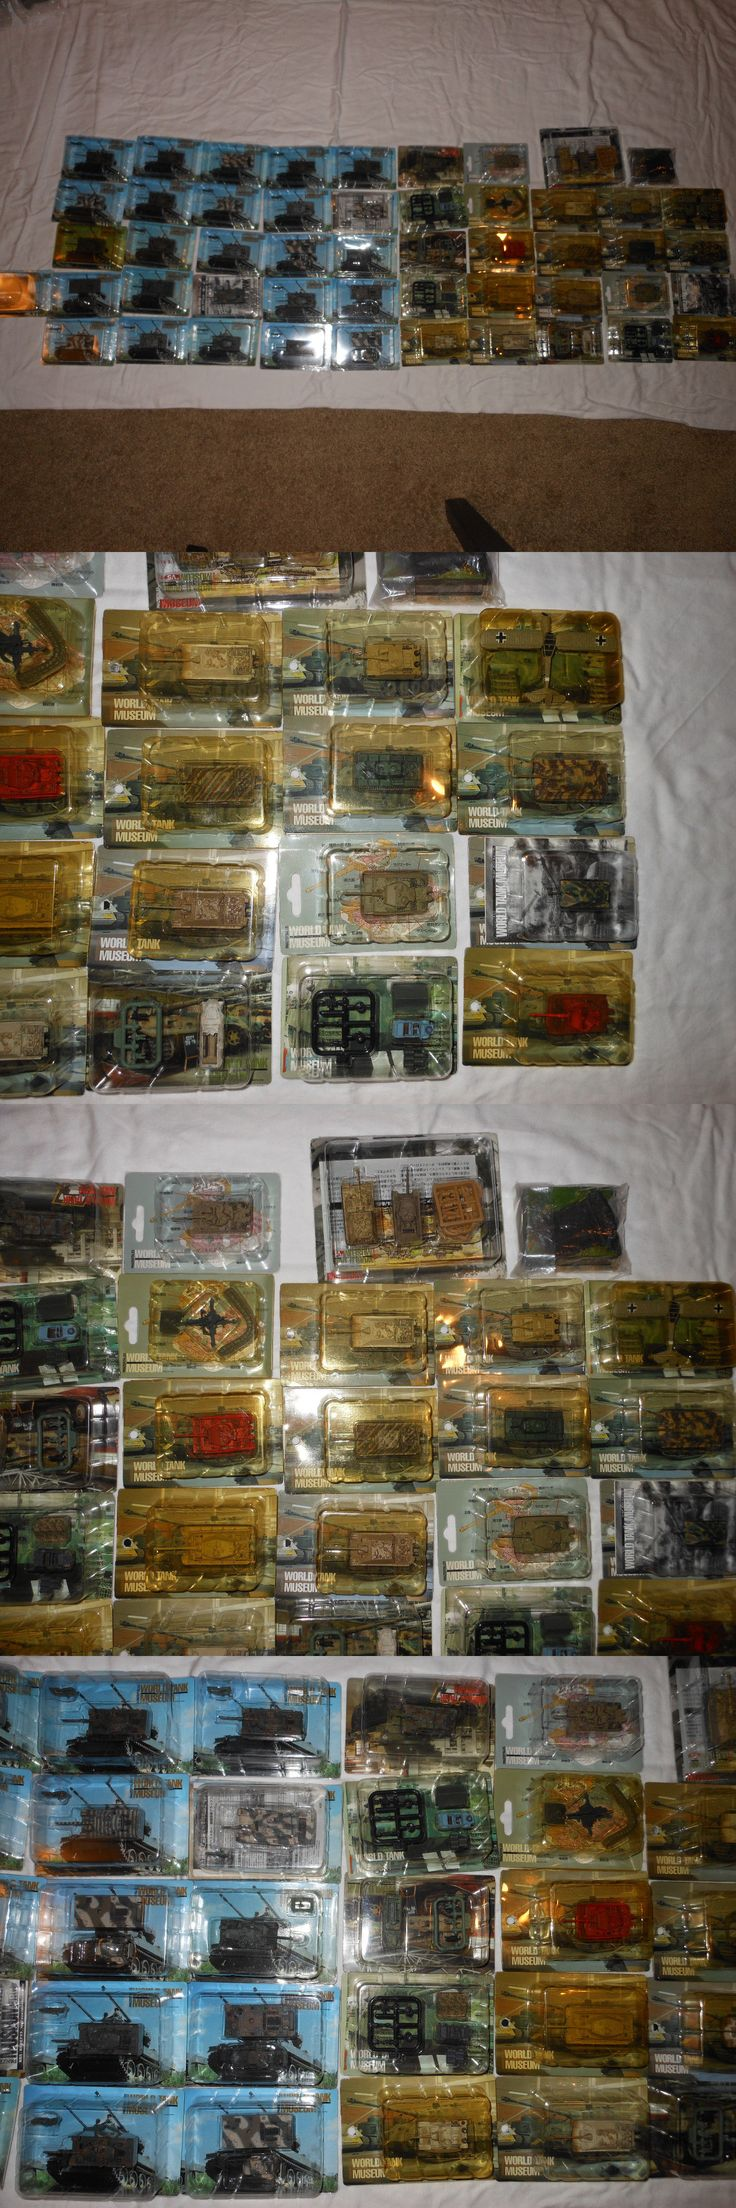 Tanks and Military Vehicles 171138: 51 Piece Takara World Tank Museum 1 144 Scale Collection!!!! -> BUY IT NOW ONLY: $1200 on eBay!